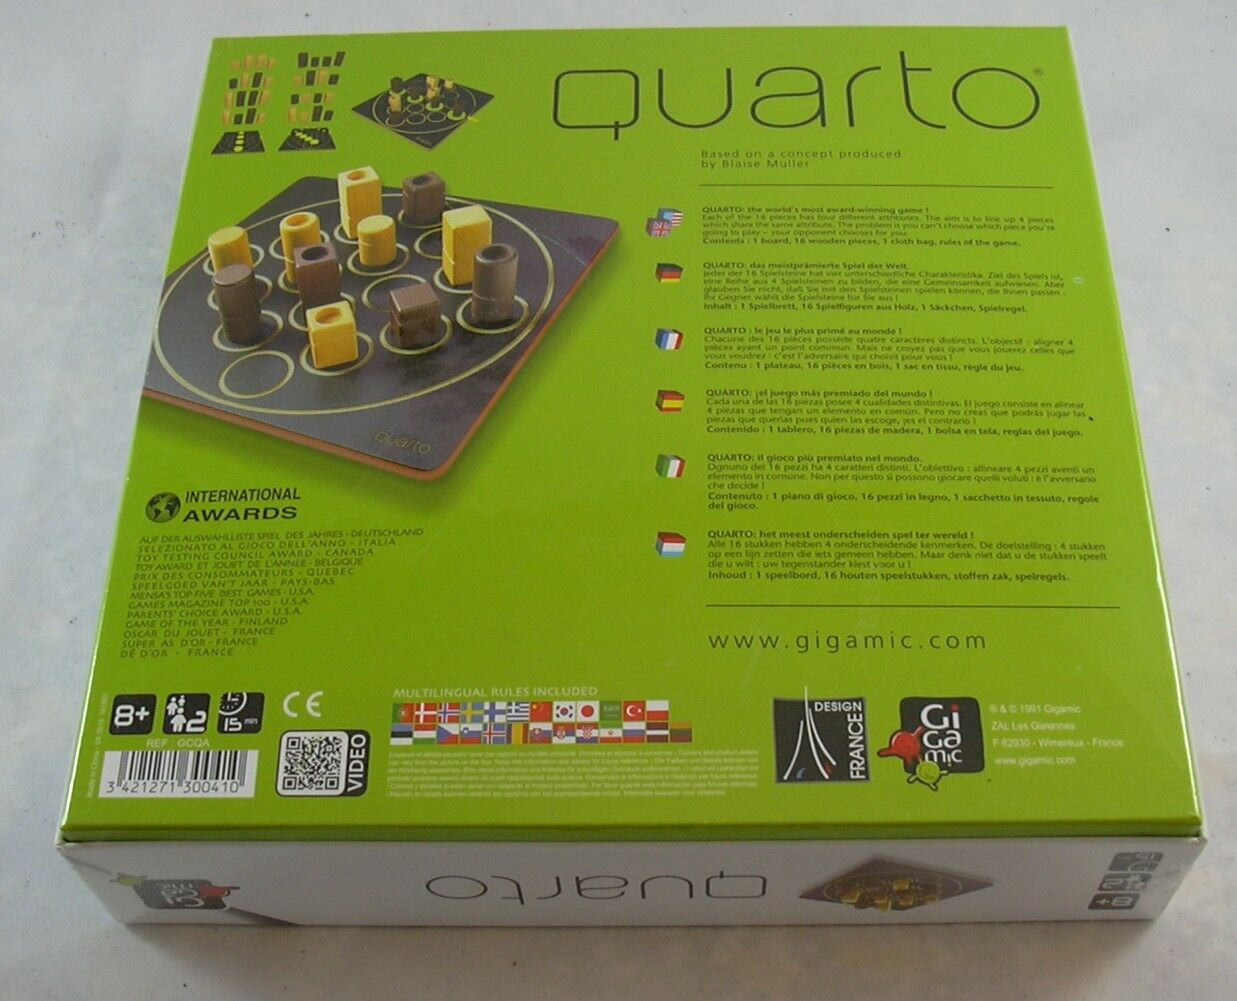 Quarto Board Game Gigamic France 1991 Factory Sealed Sealed Sealed Wooden Pieces Strategy 3063e7